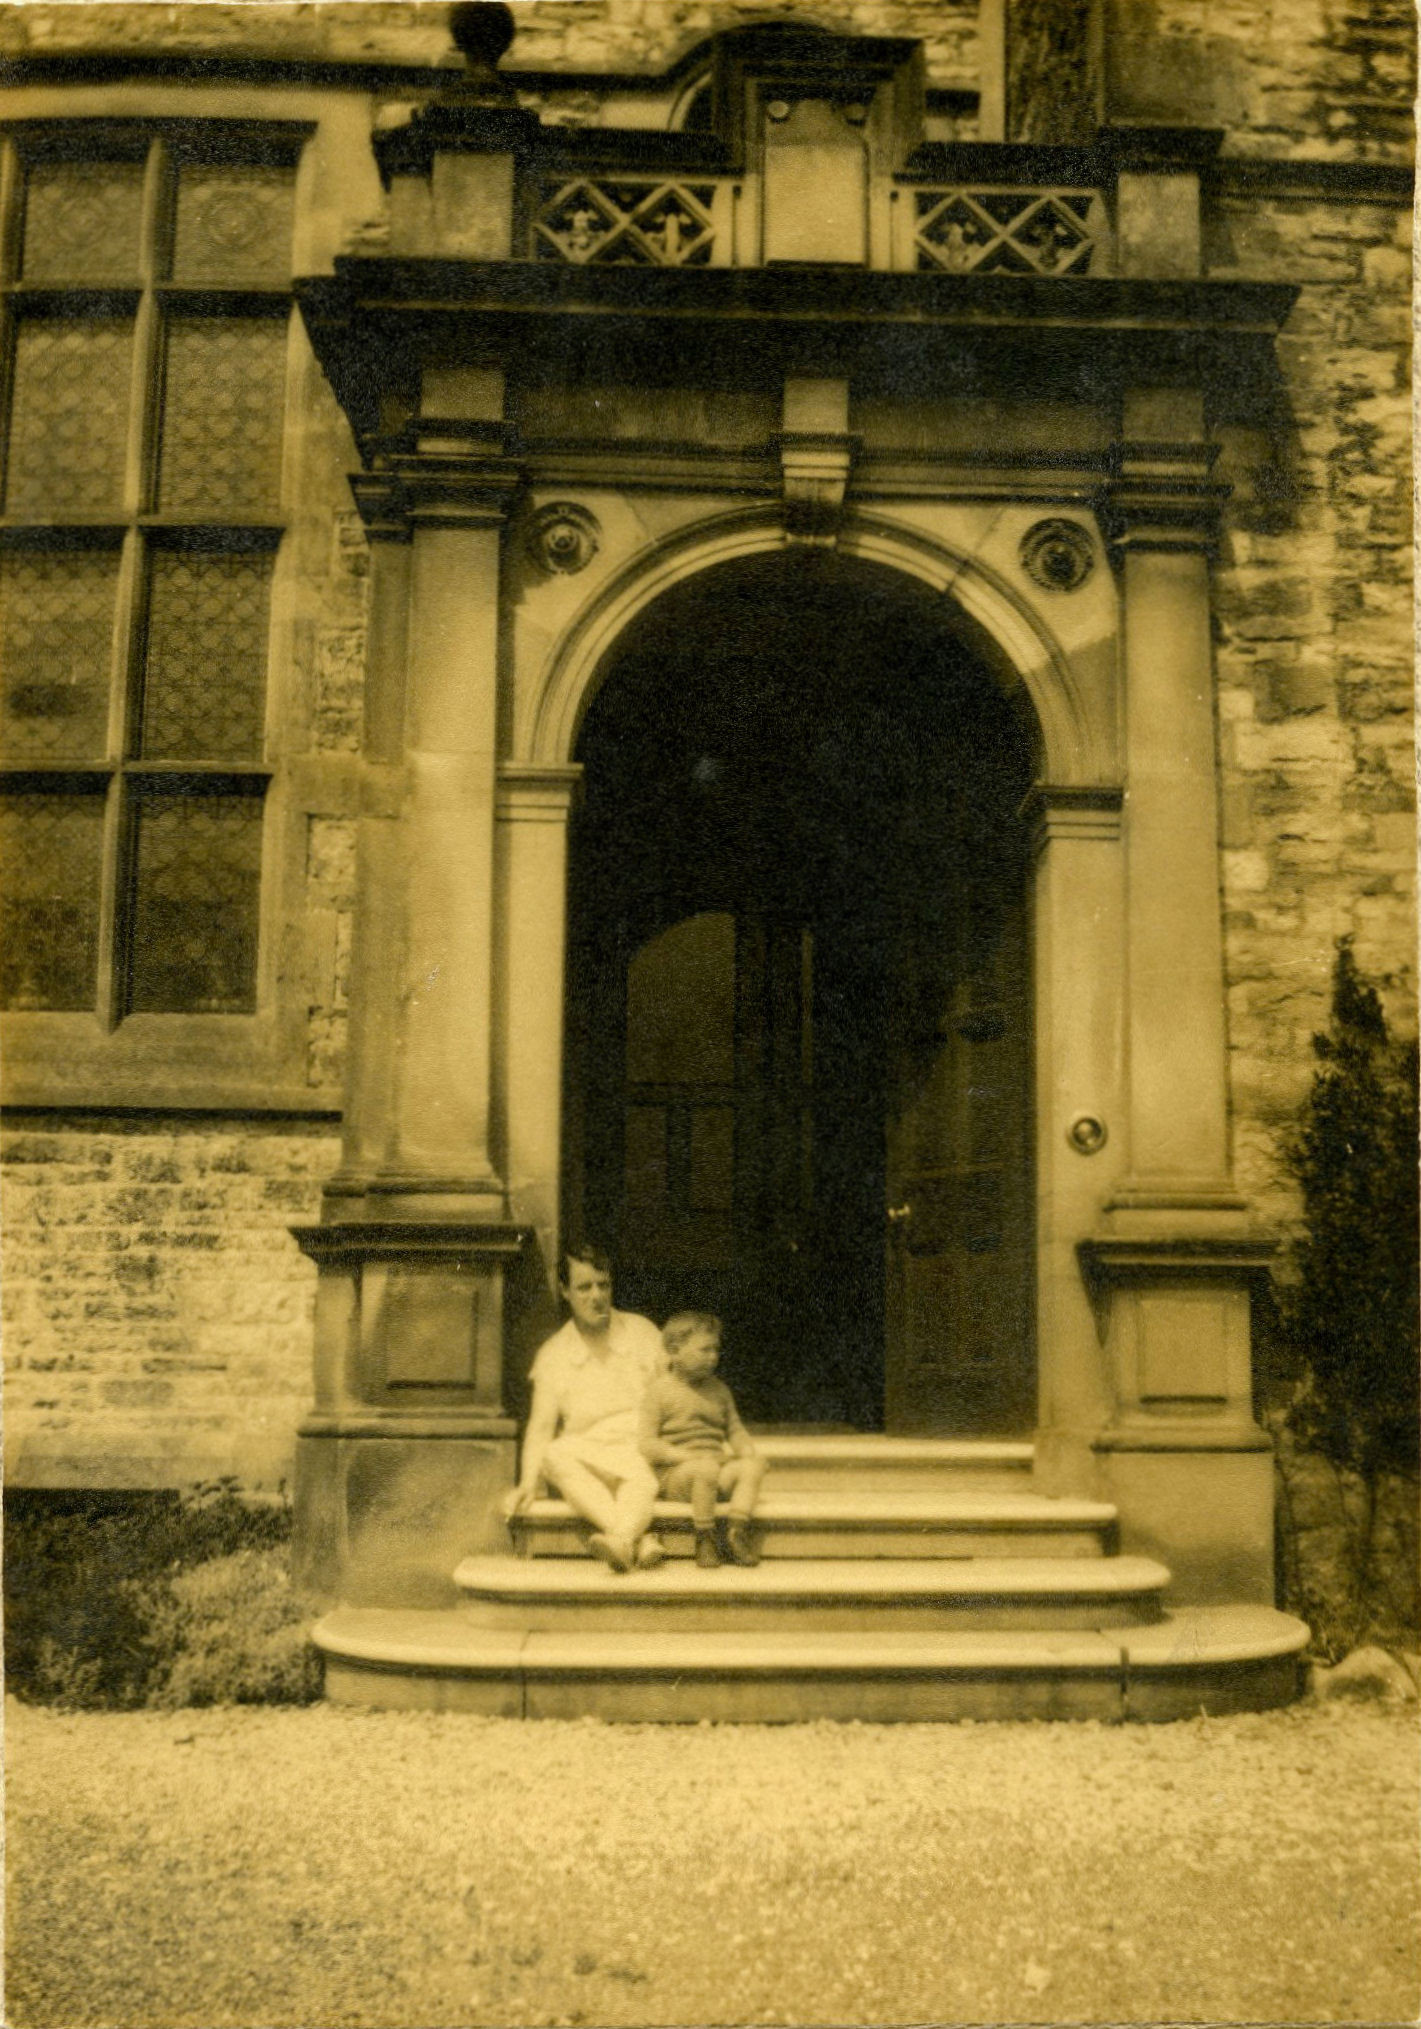 The large porch and front doors of the Rookery, courtesy of Rowly & Margaret Fawcett.